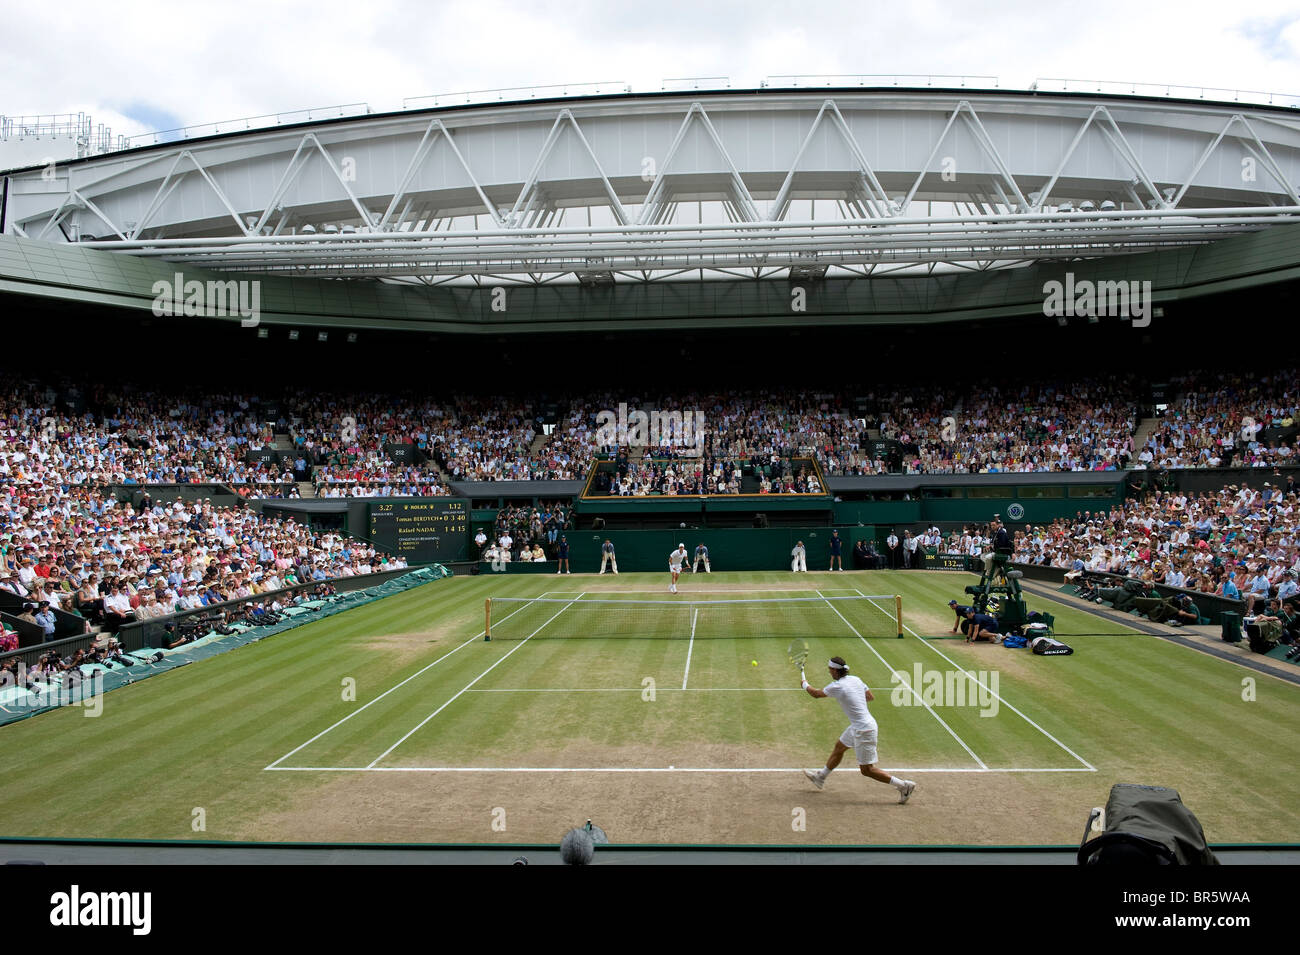 General view of Centre Court play during the mens singles final at the Wimbledon Tennis Championships 2010 - Stock Image